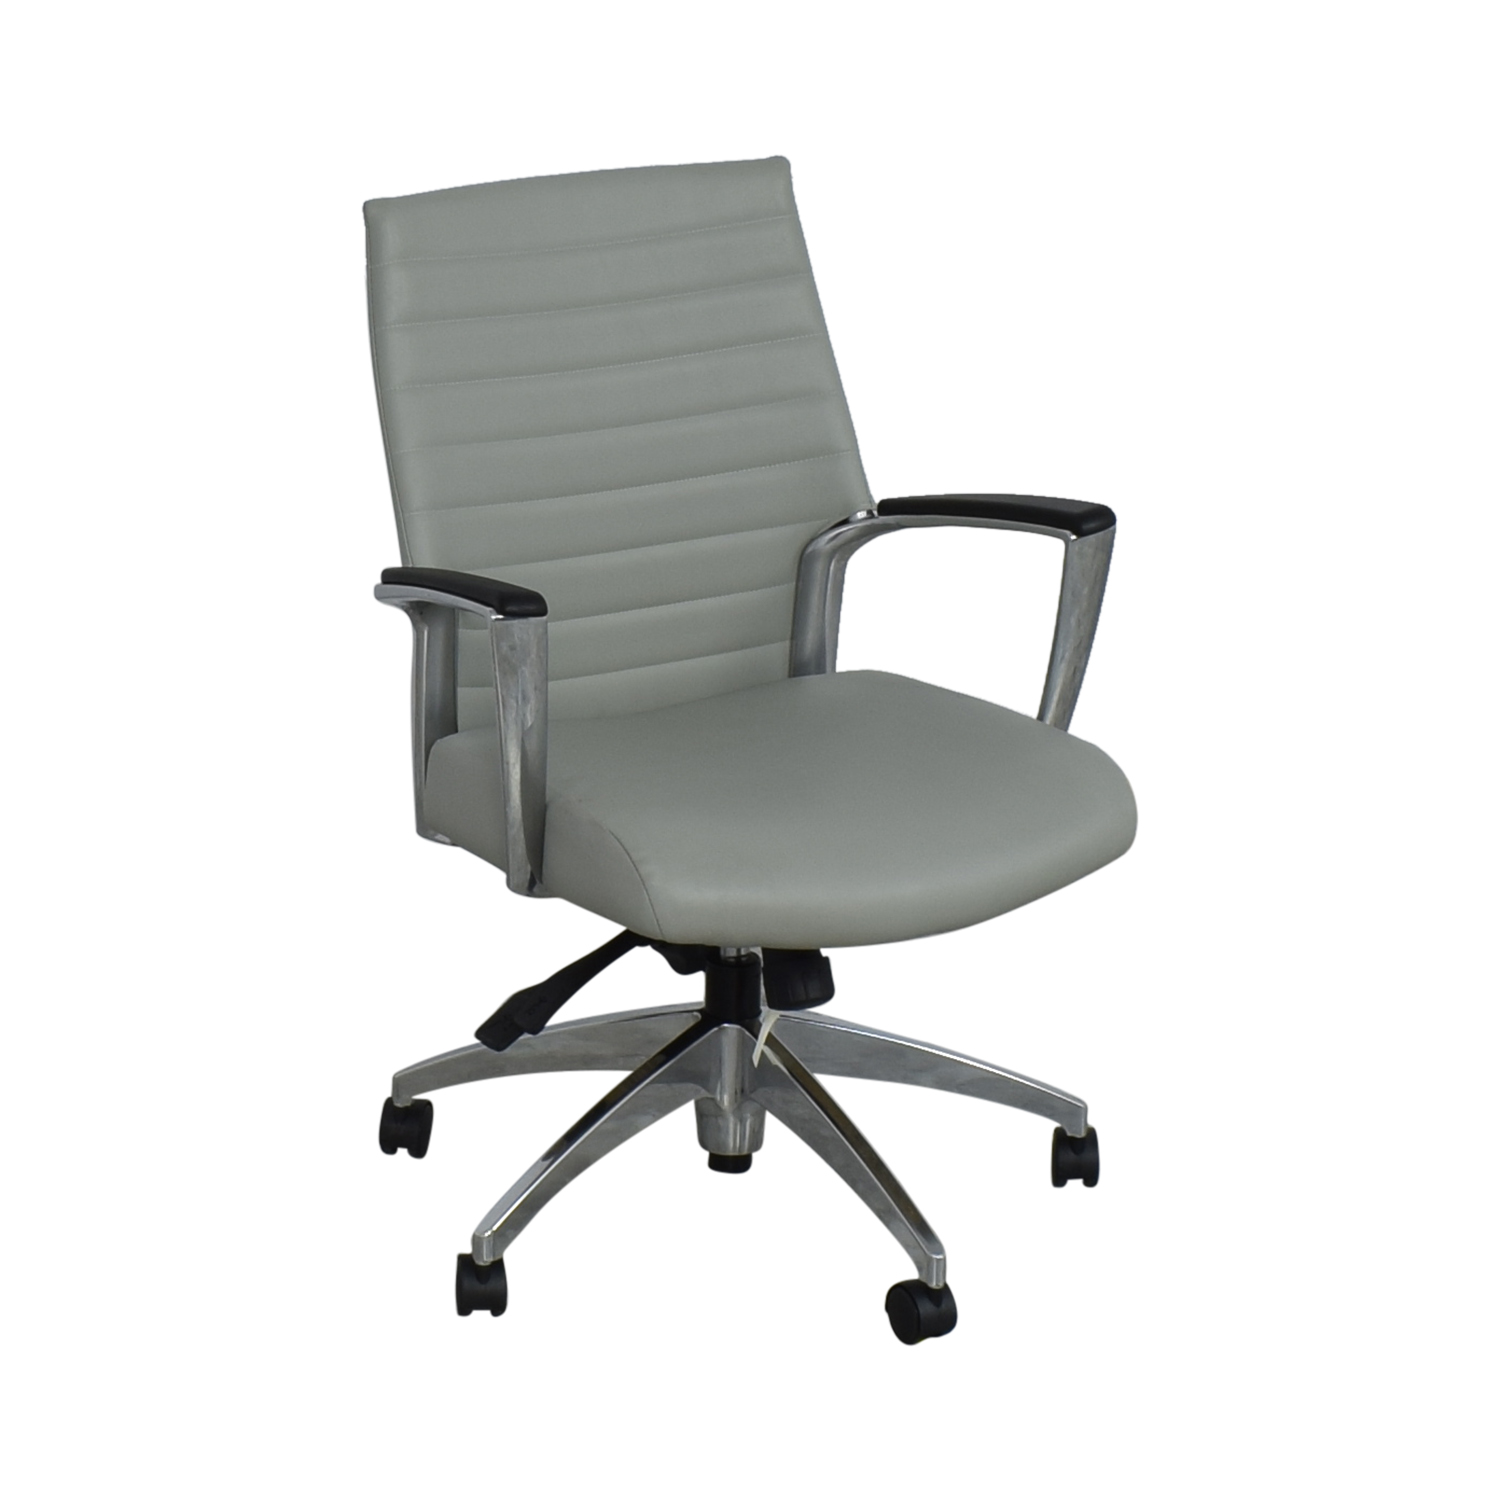 Global Accord Medium Back Tilter Chair / Home Office Chairs